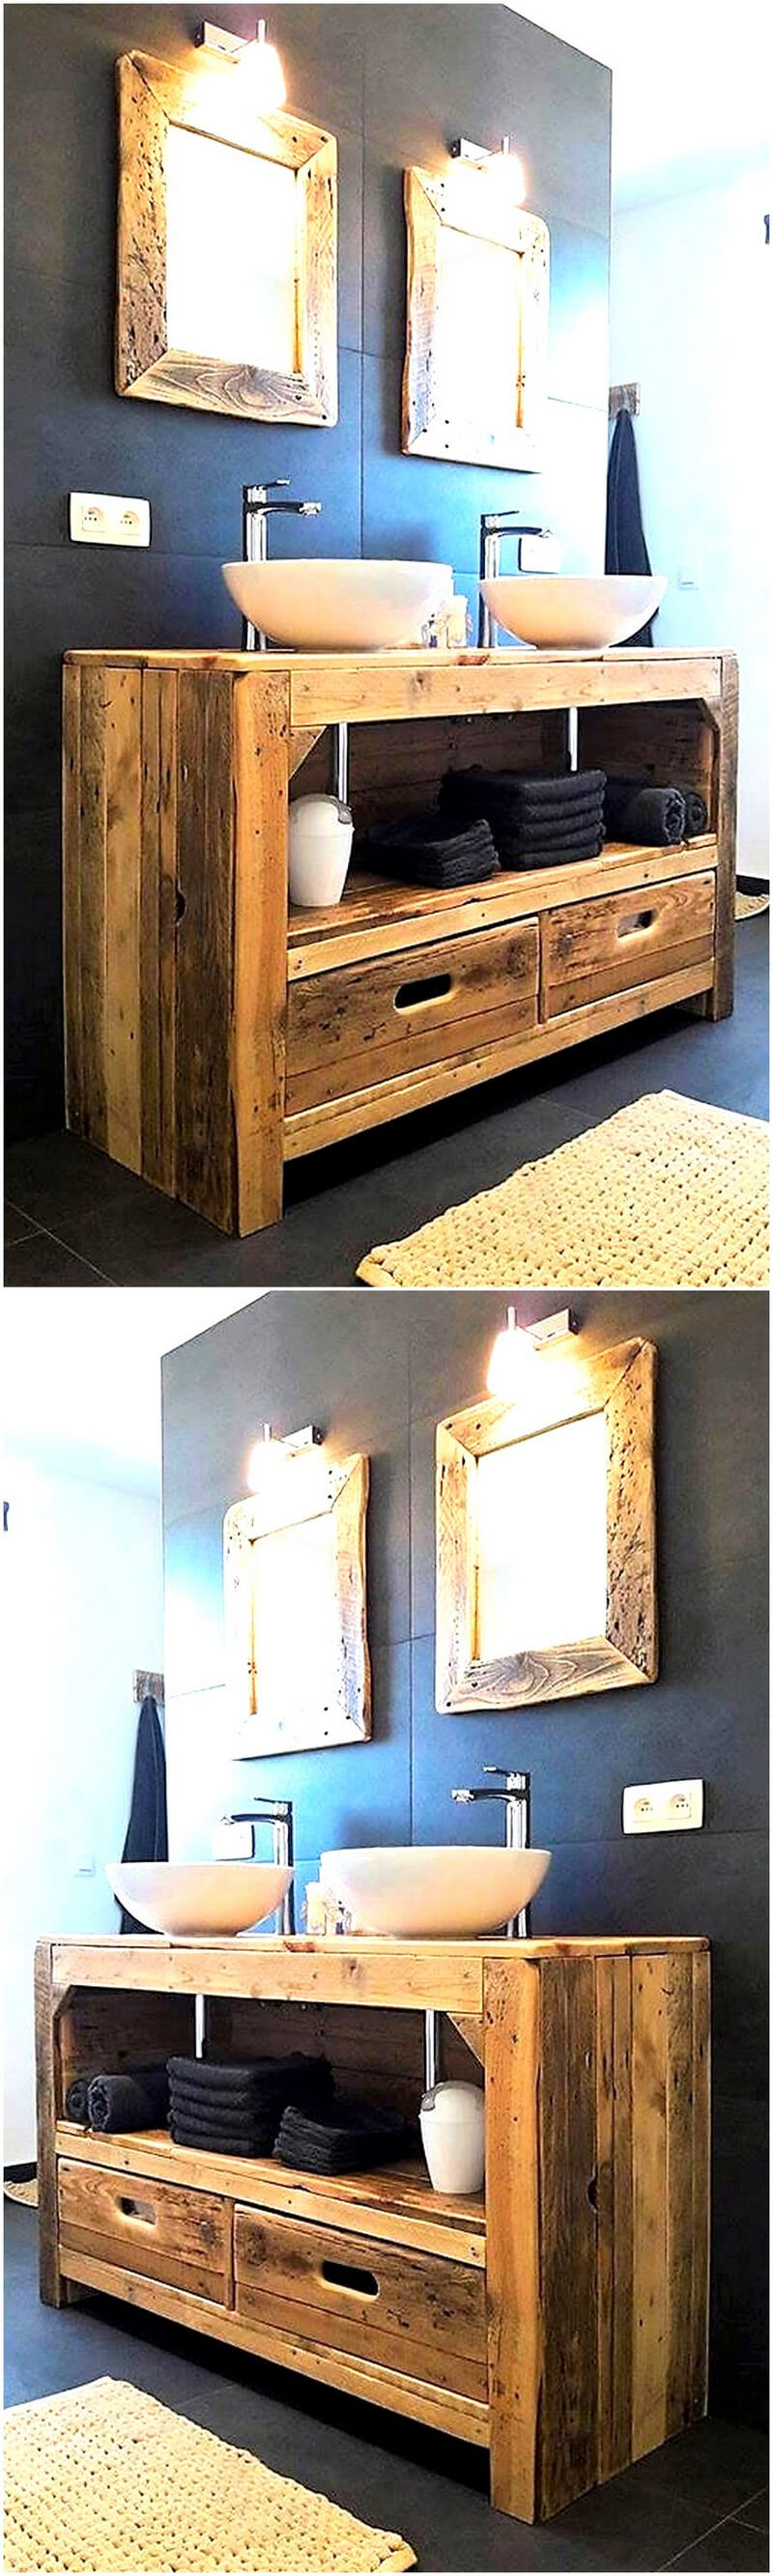 rustic sink plan with pallets